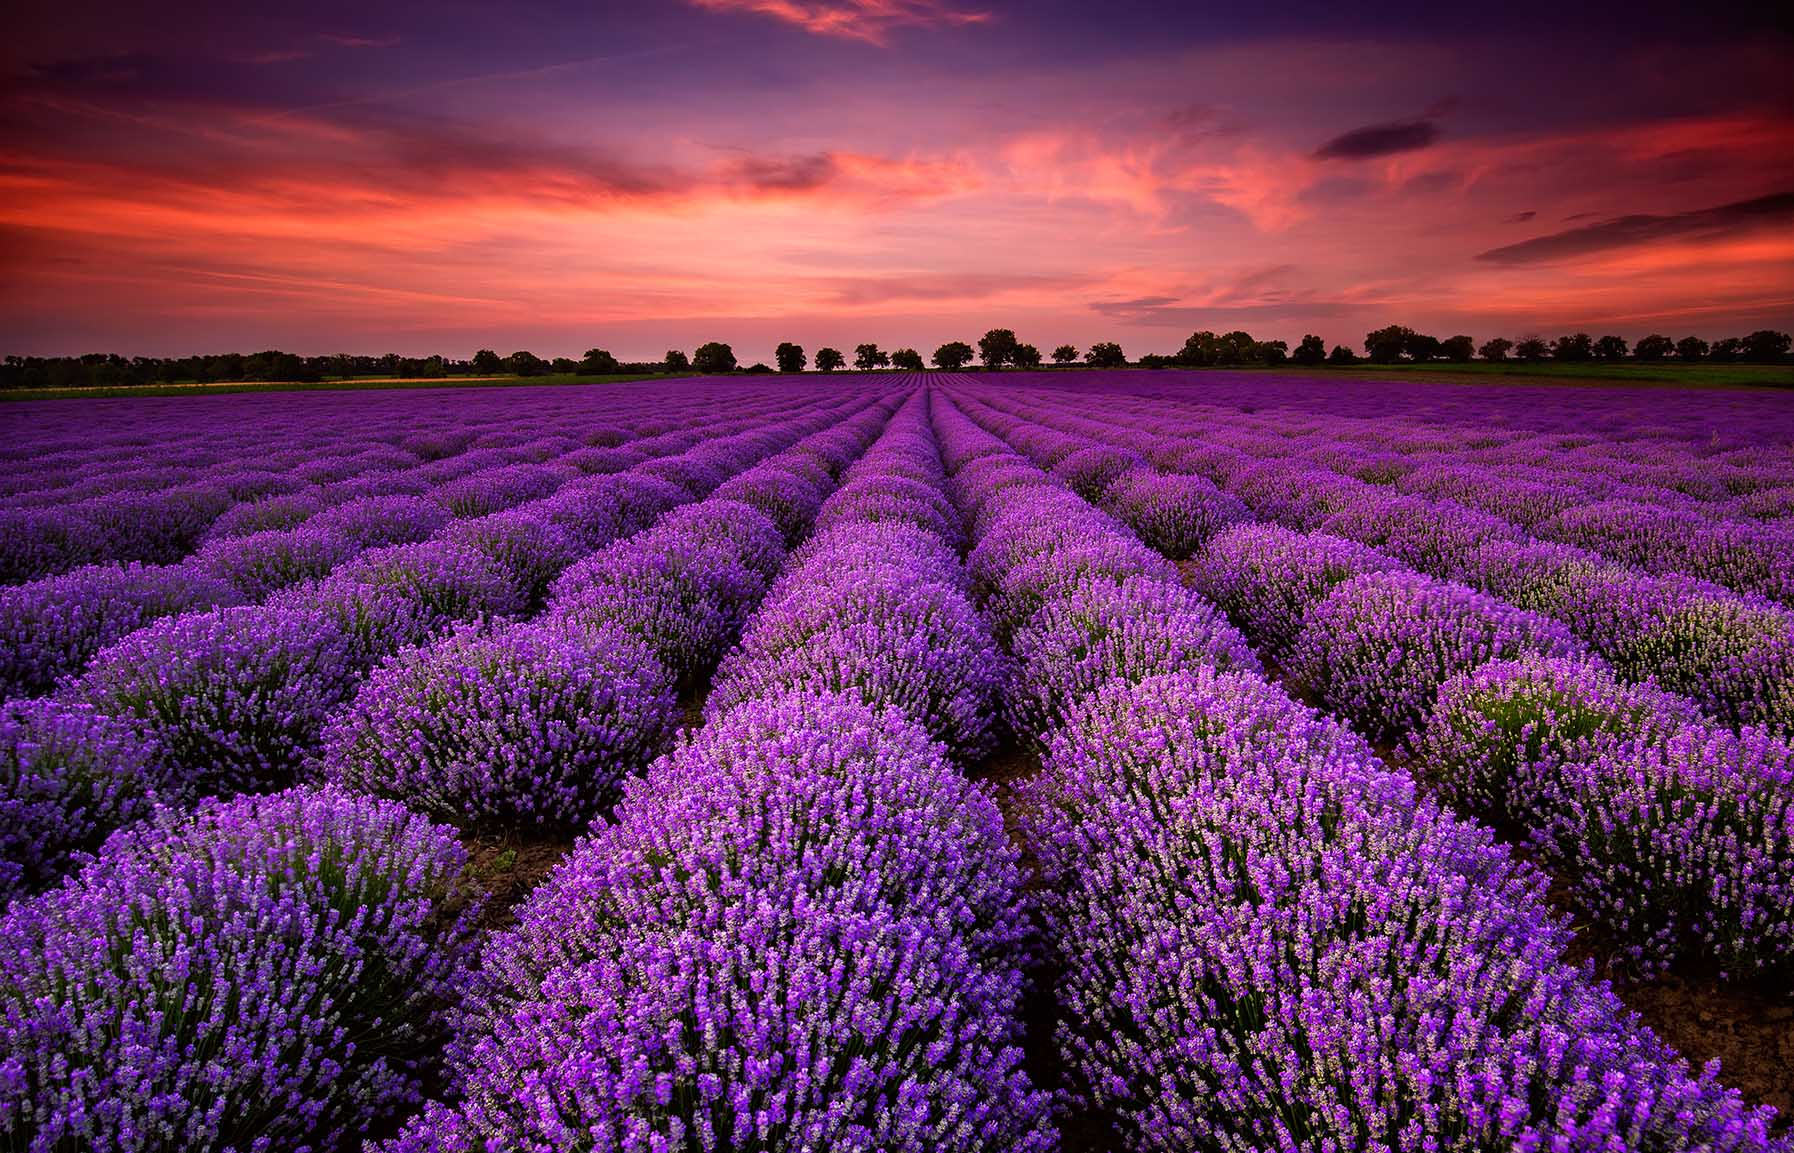 Canvas Prints - Lavender Field At Sunset